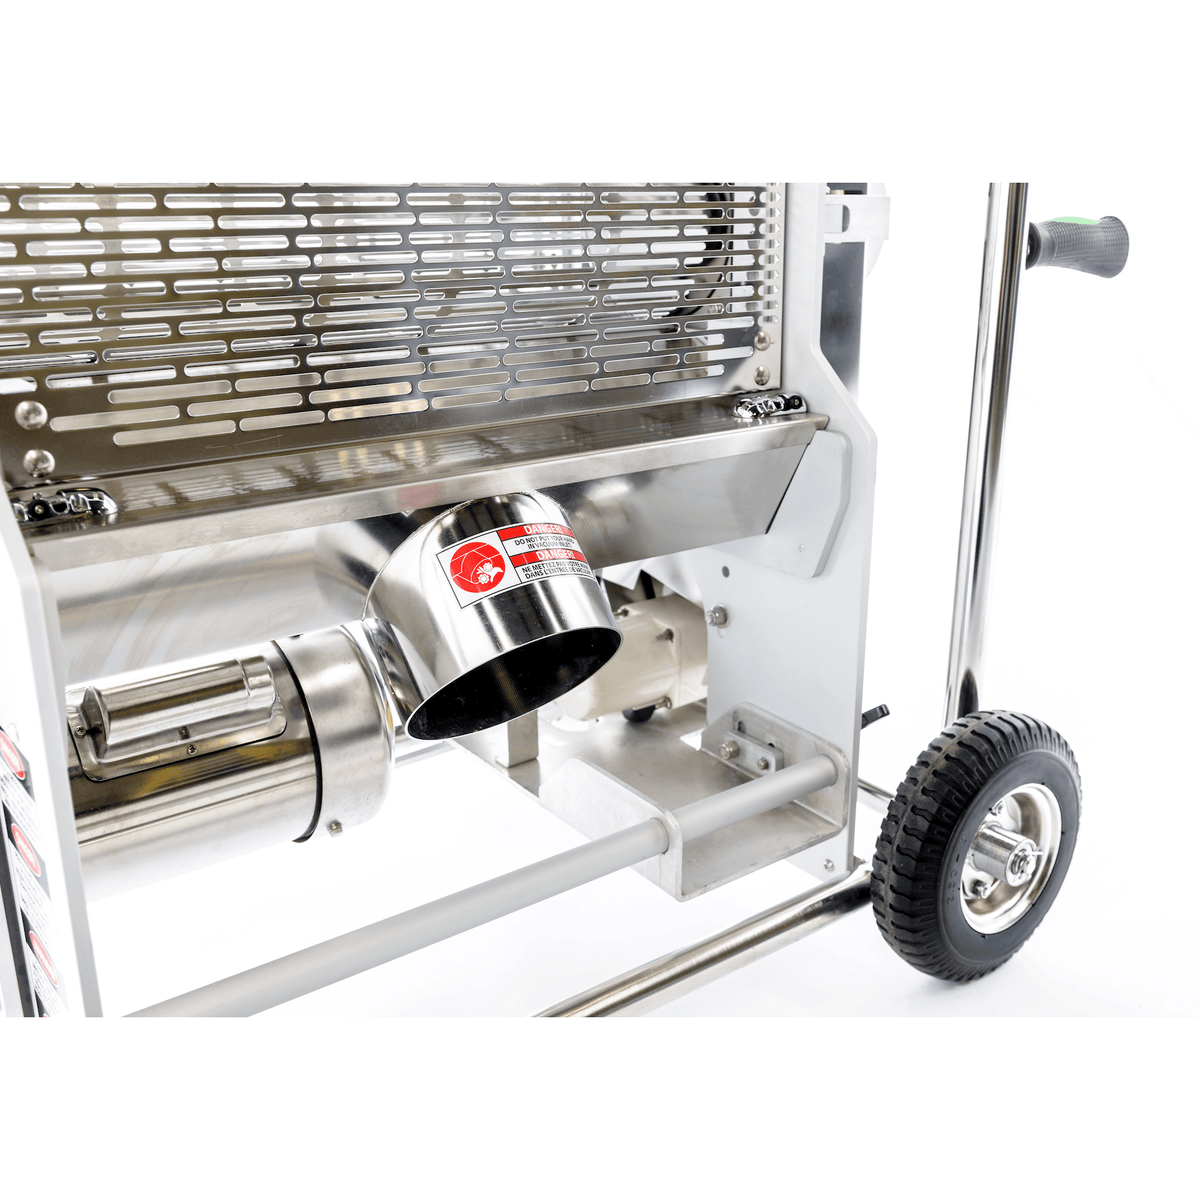 Twister T2 Tandem Bud Trimmer & Leaf Collector System